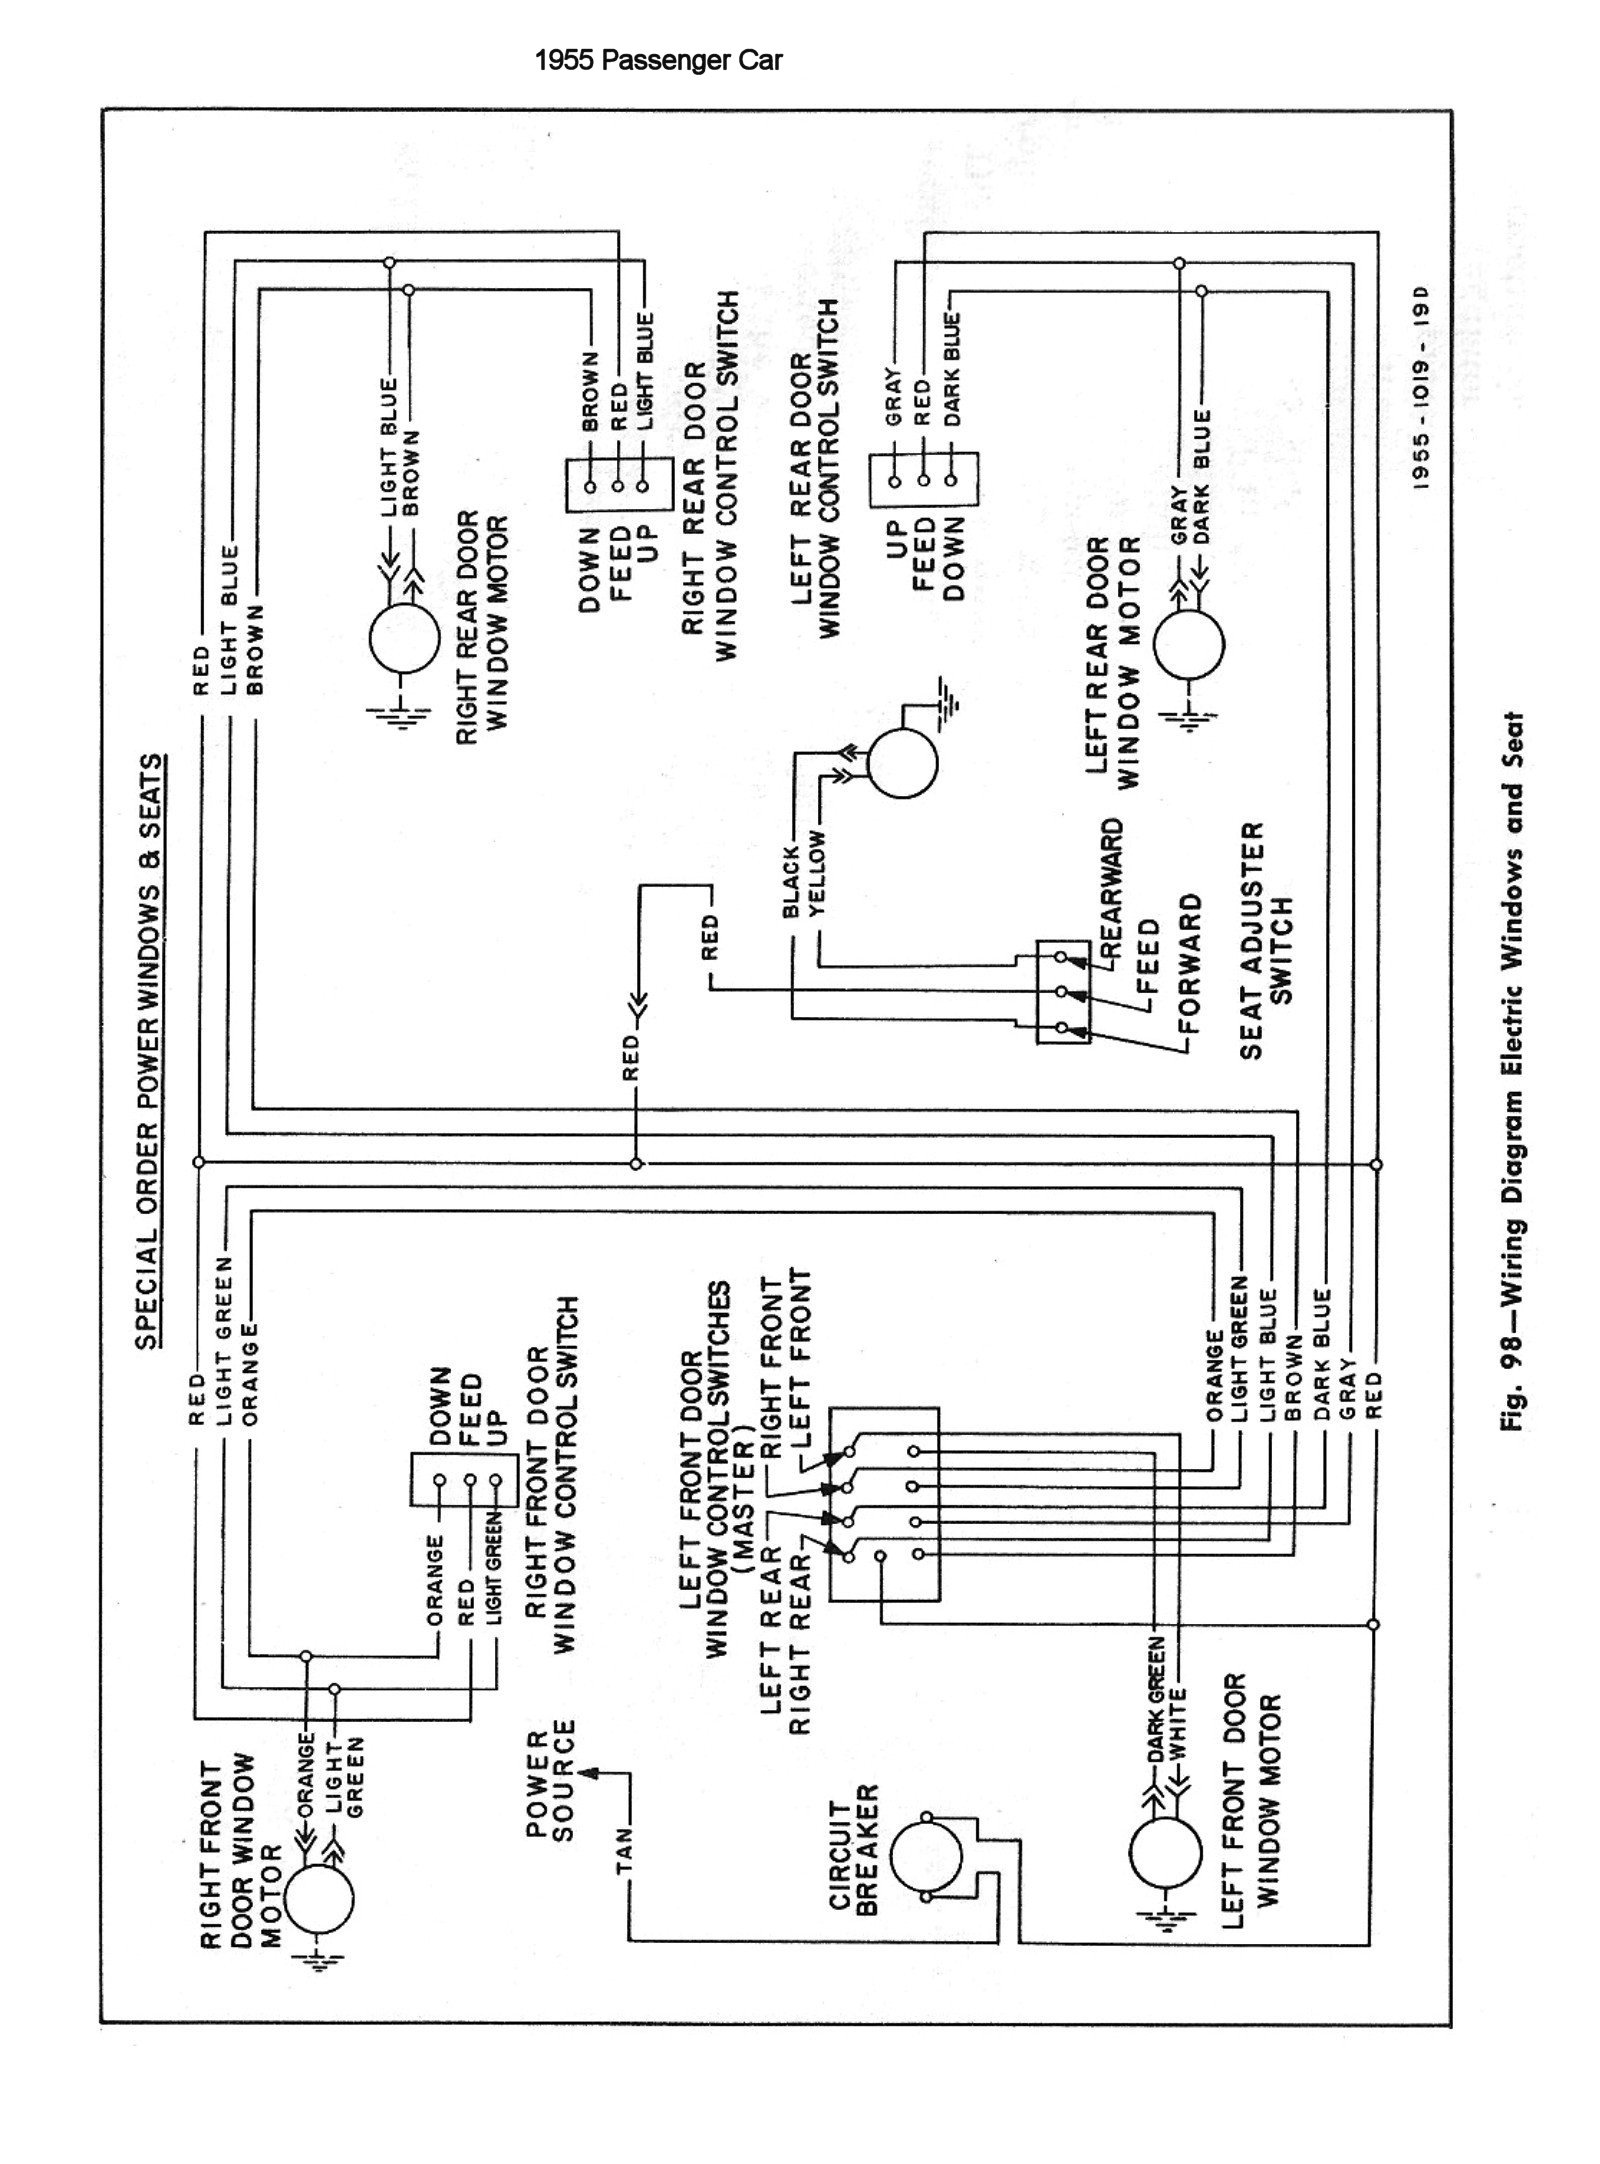 55csm0146 wiring diagram for international truck the wiring diagram  at sewacar.co